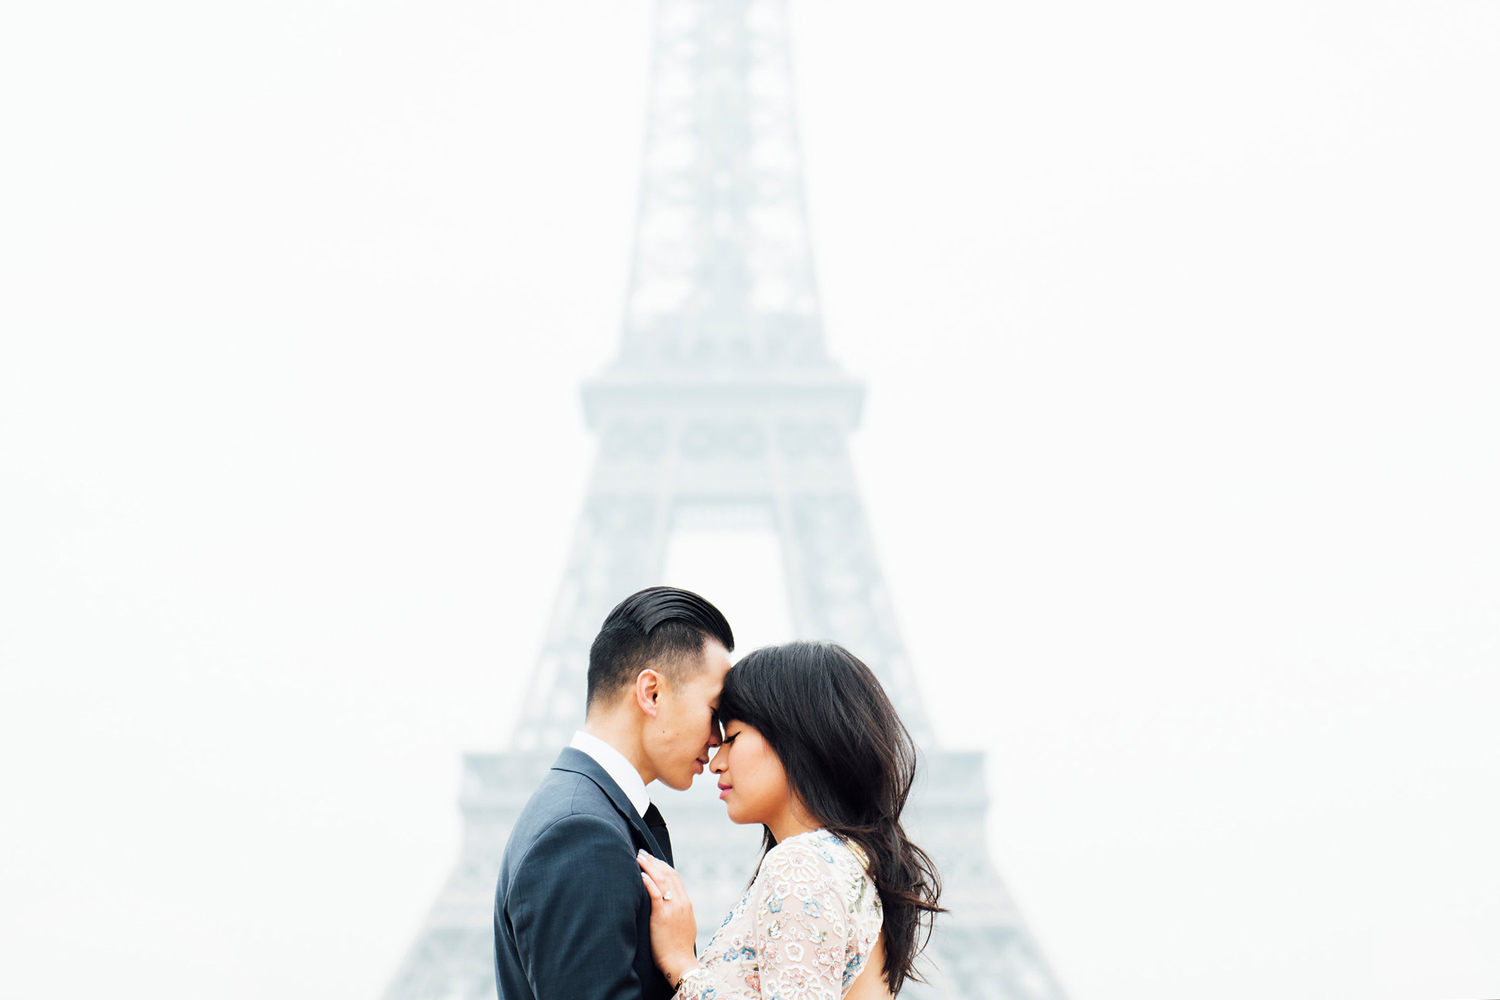 005-eiffel-tower-and-engaged-couple-photoshoot.jpg